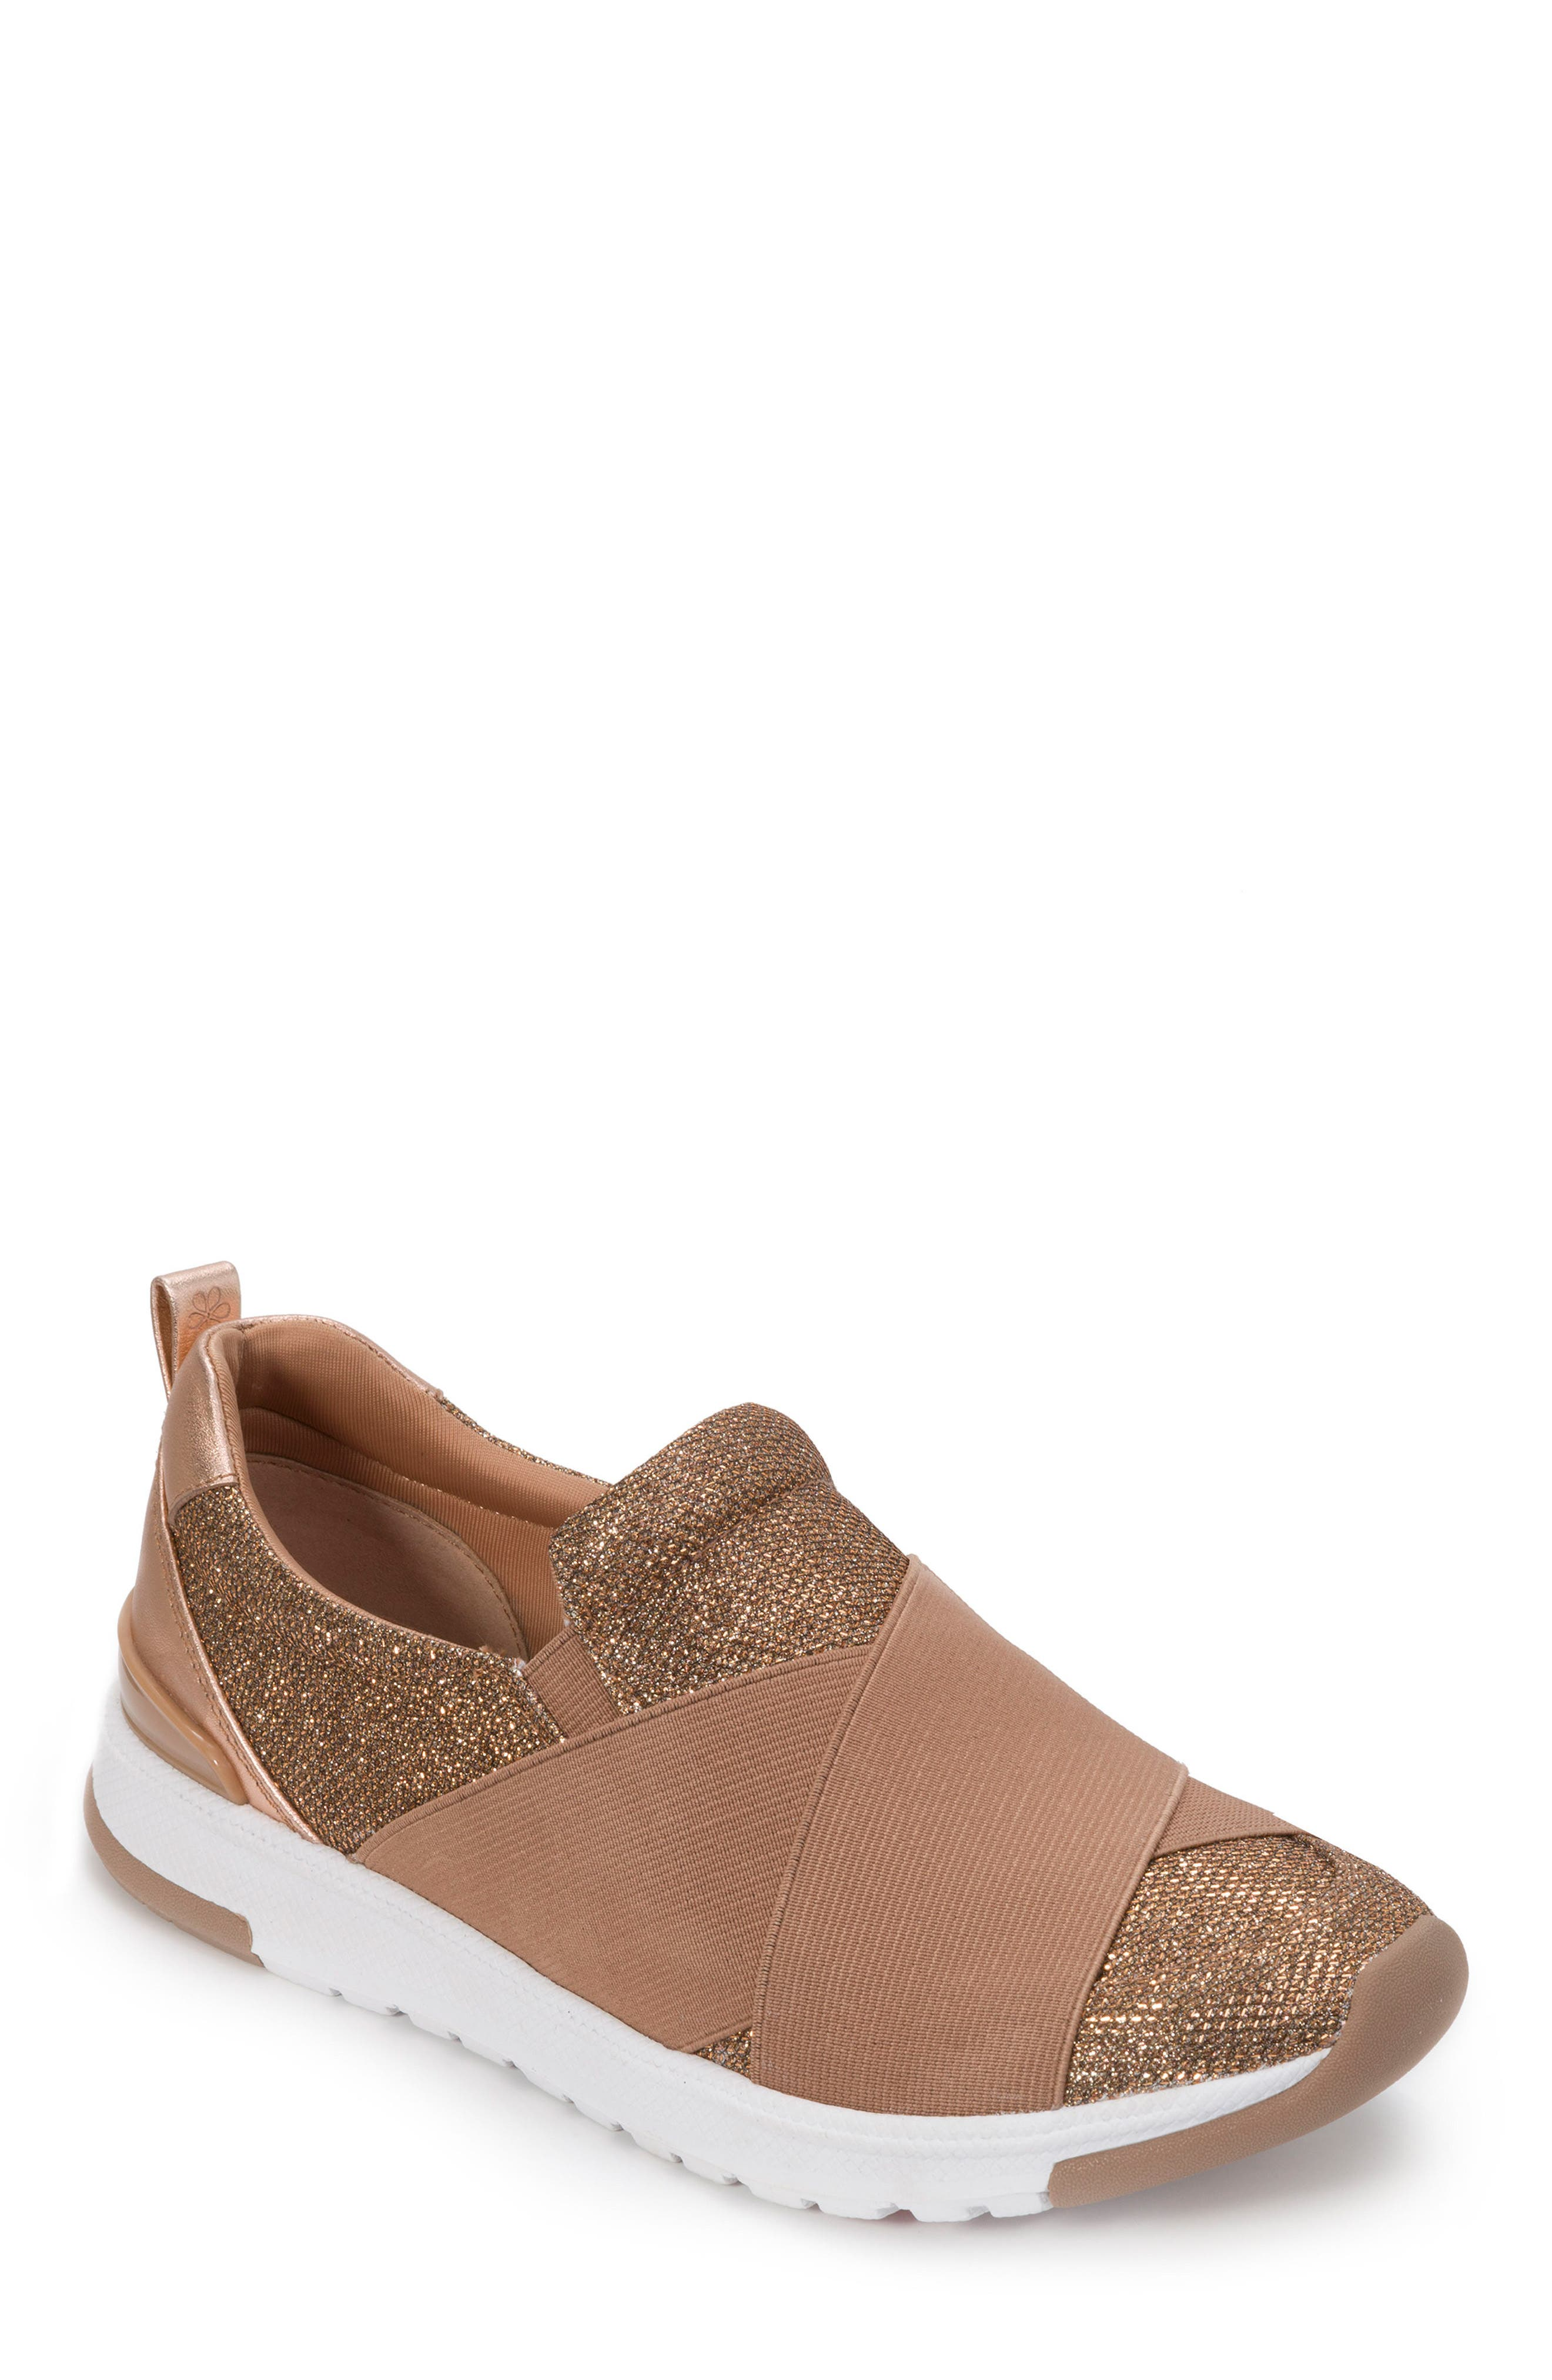 FOOT PETALS Slip-On Sneaker in Rose Gold Leather